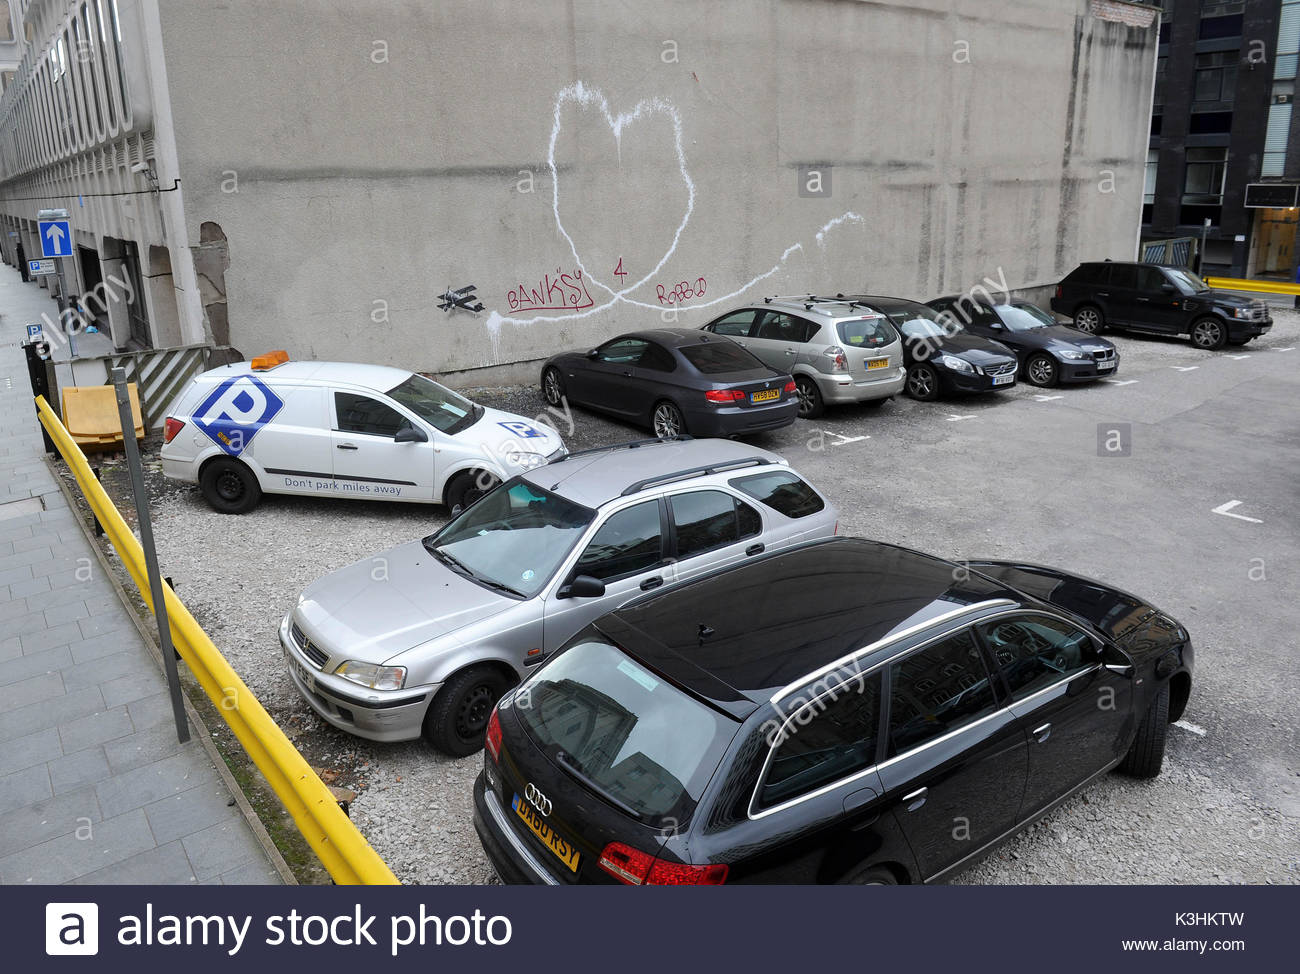 Graffiti on car park wall stock photos graffiti on car for Wall street motor cars